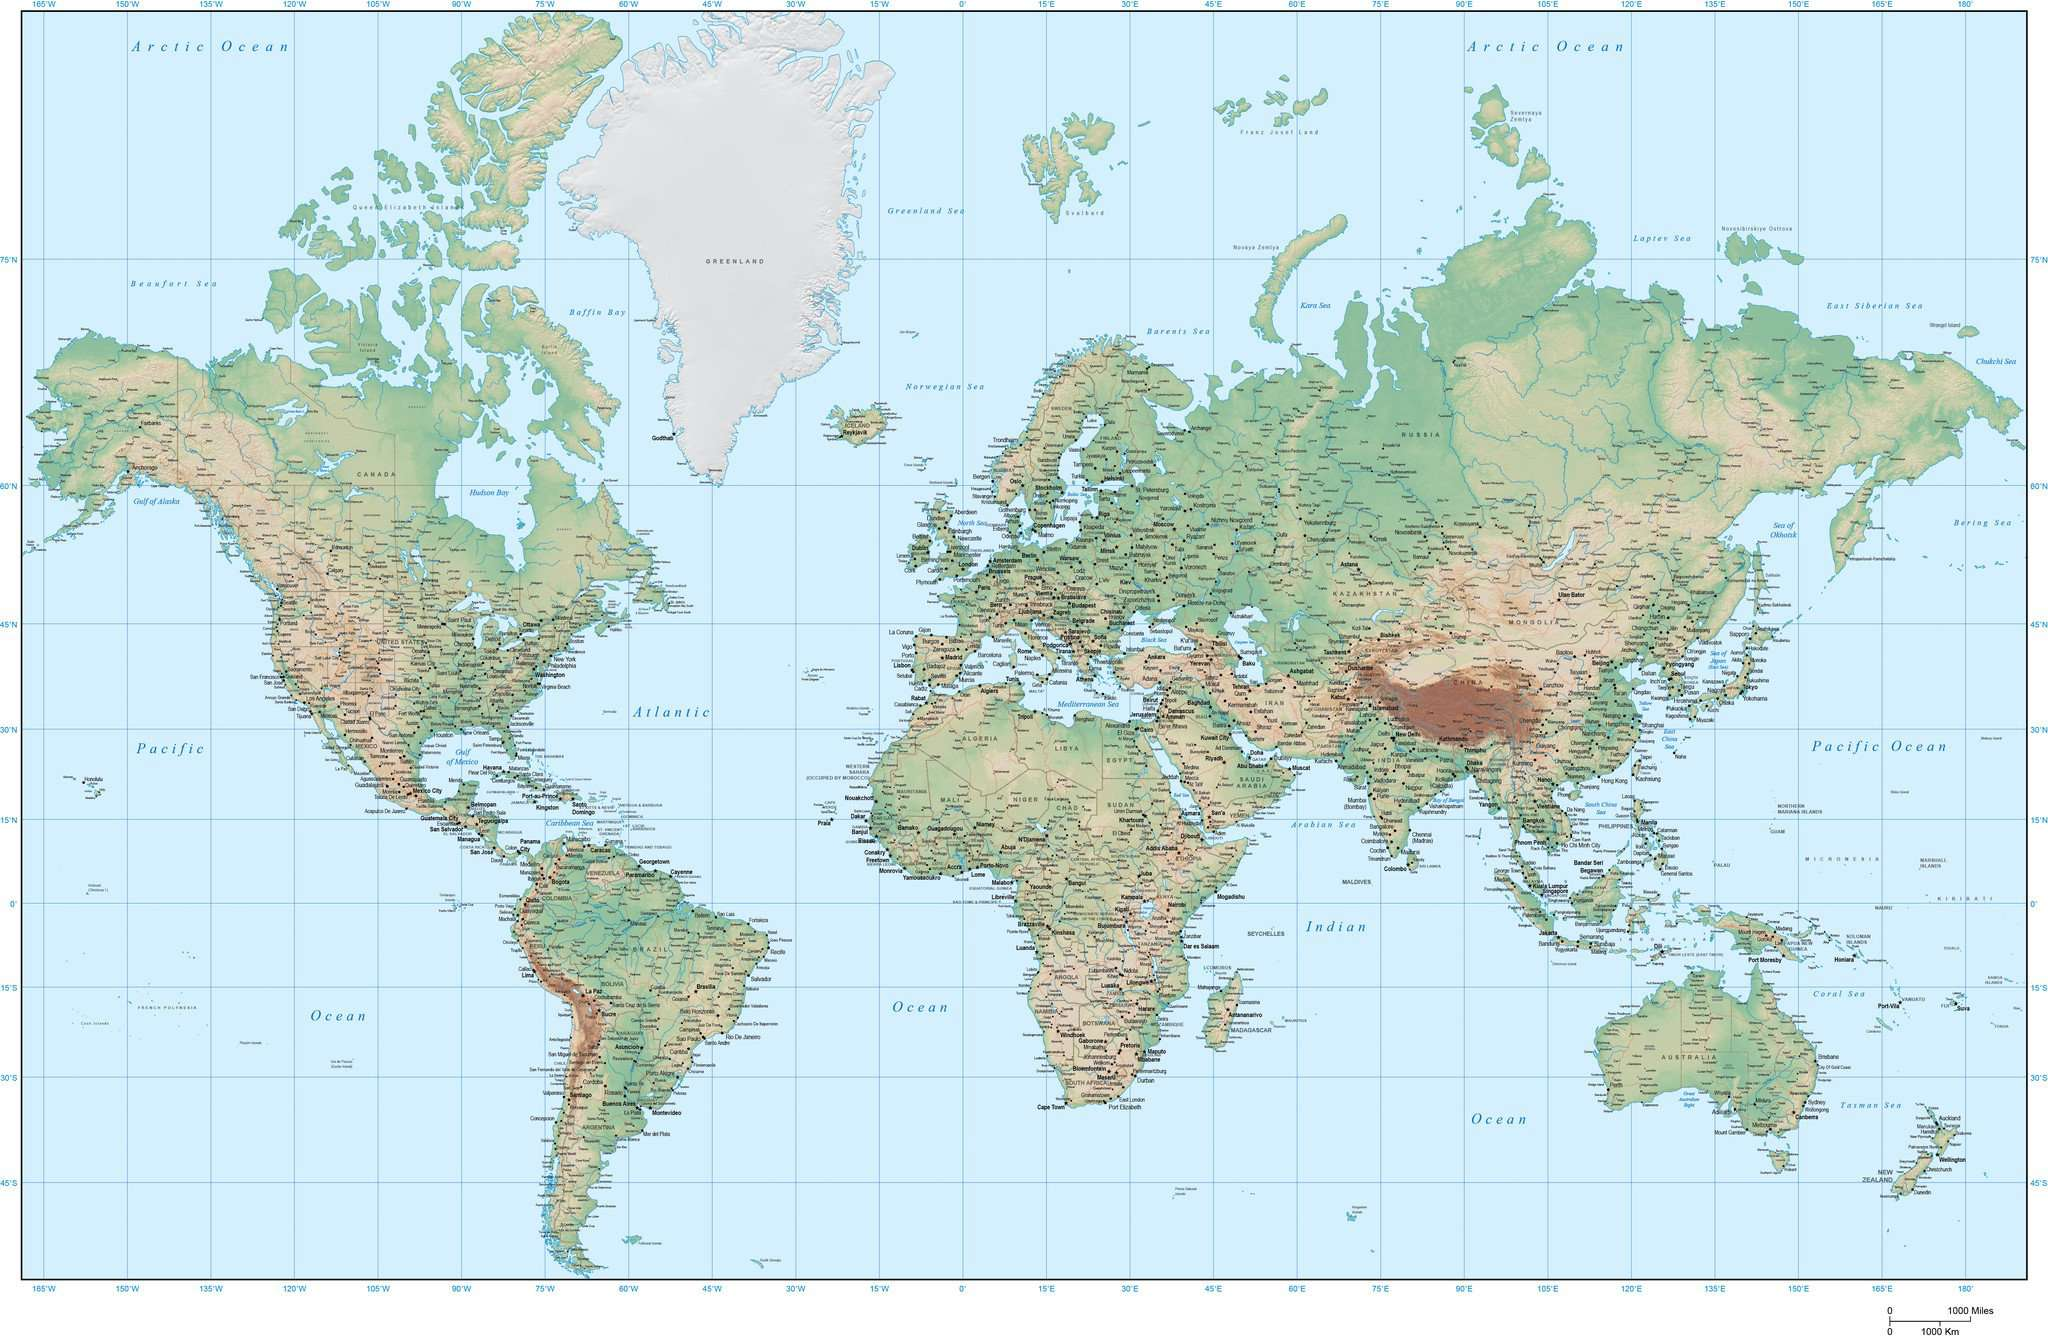 Digital World Terrain Map In Adobe Illustrator With Photoshop - World map poster